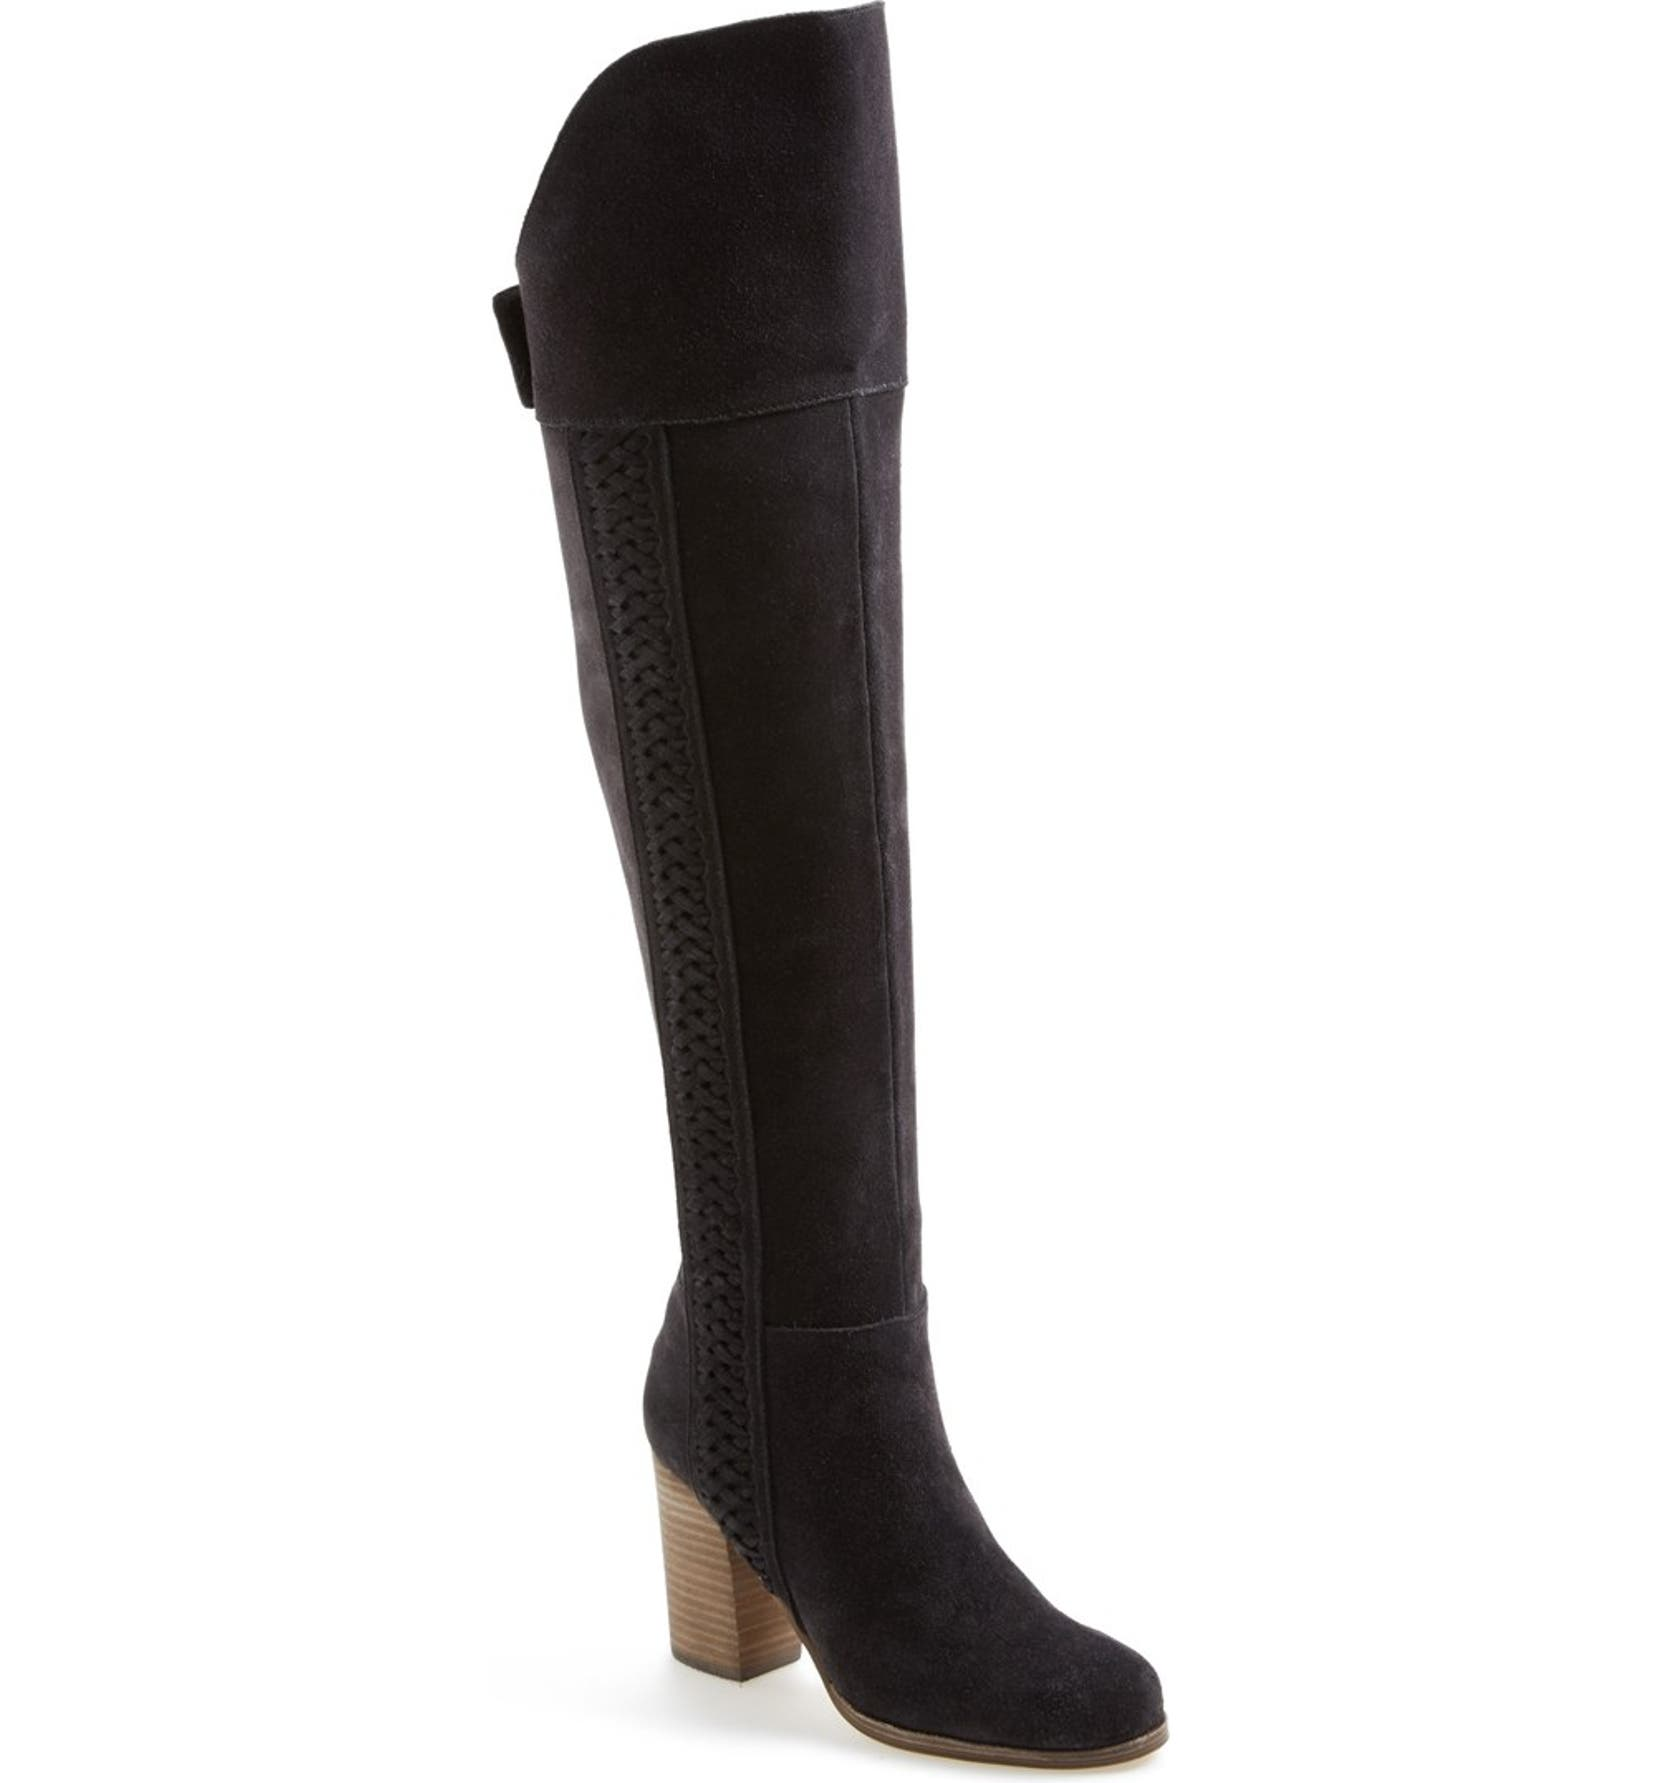 'Myer' Over the Knee Boot